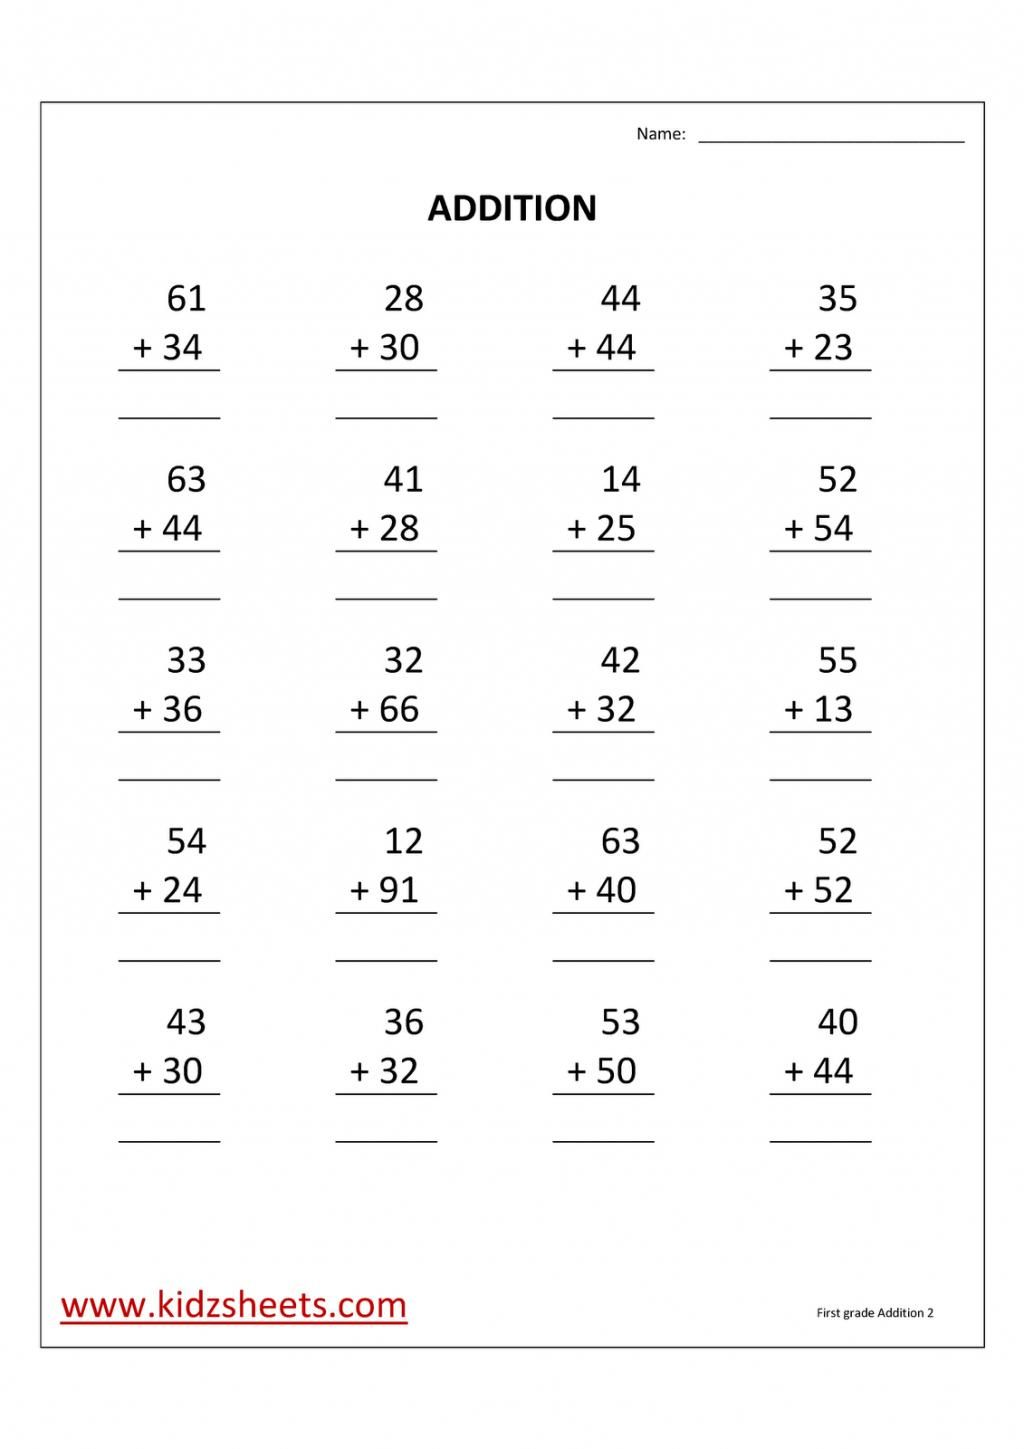 Awesome Kids Printable Math Worksheets That You Must Know